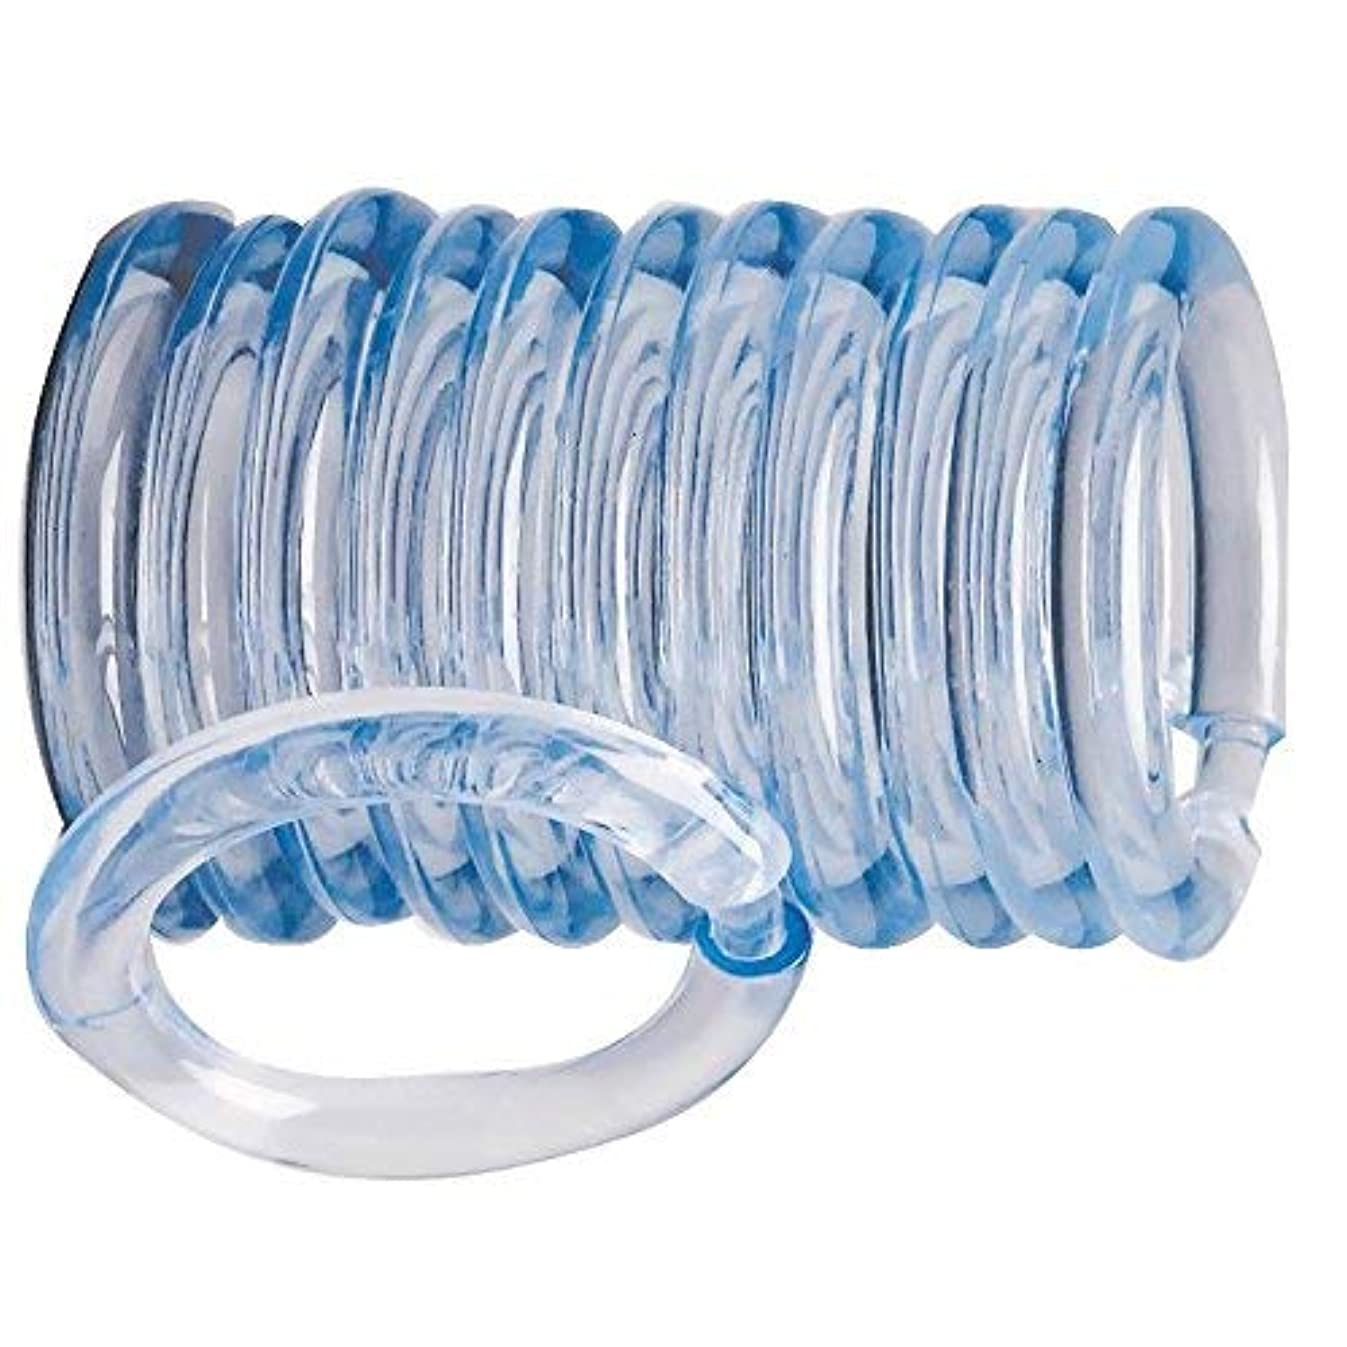 Rocky Mountain Goods Plastic Curtain Rings - 12 Pack - Click securely in place - Unbreakable plastic with - True O ring design - Slides easily without screeching like metal (Clear)